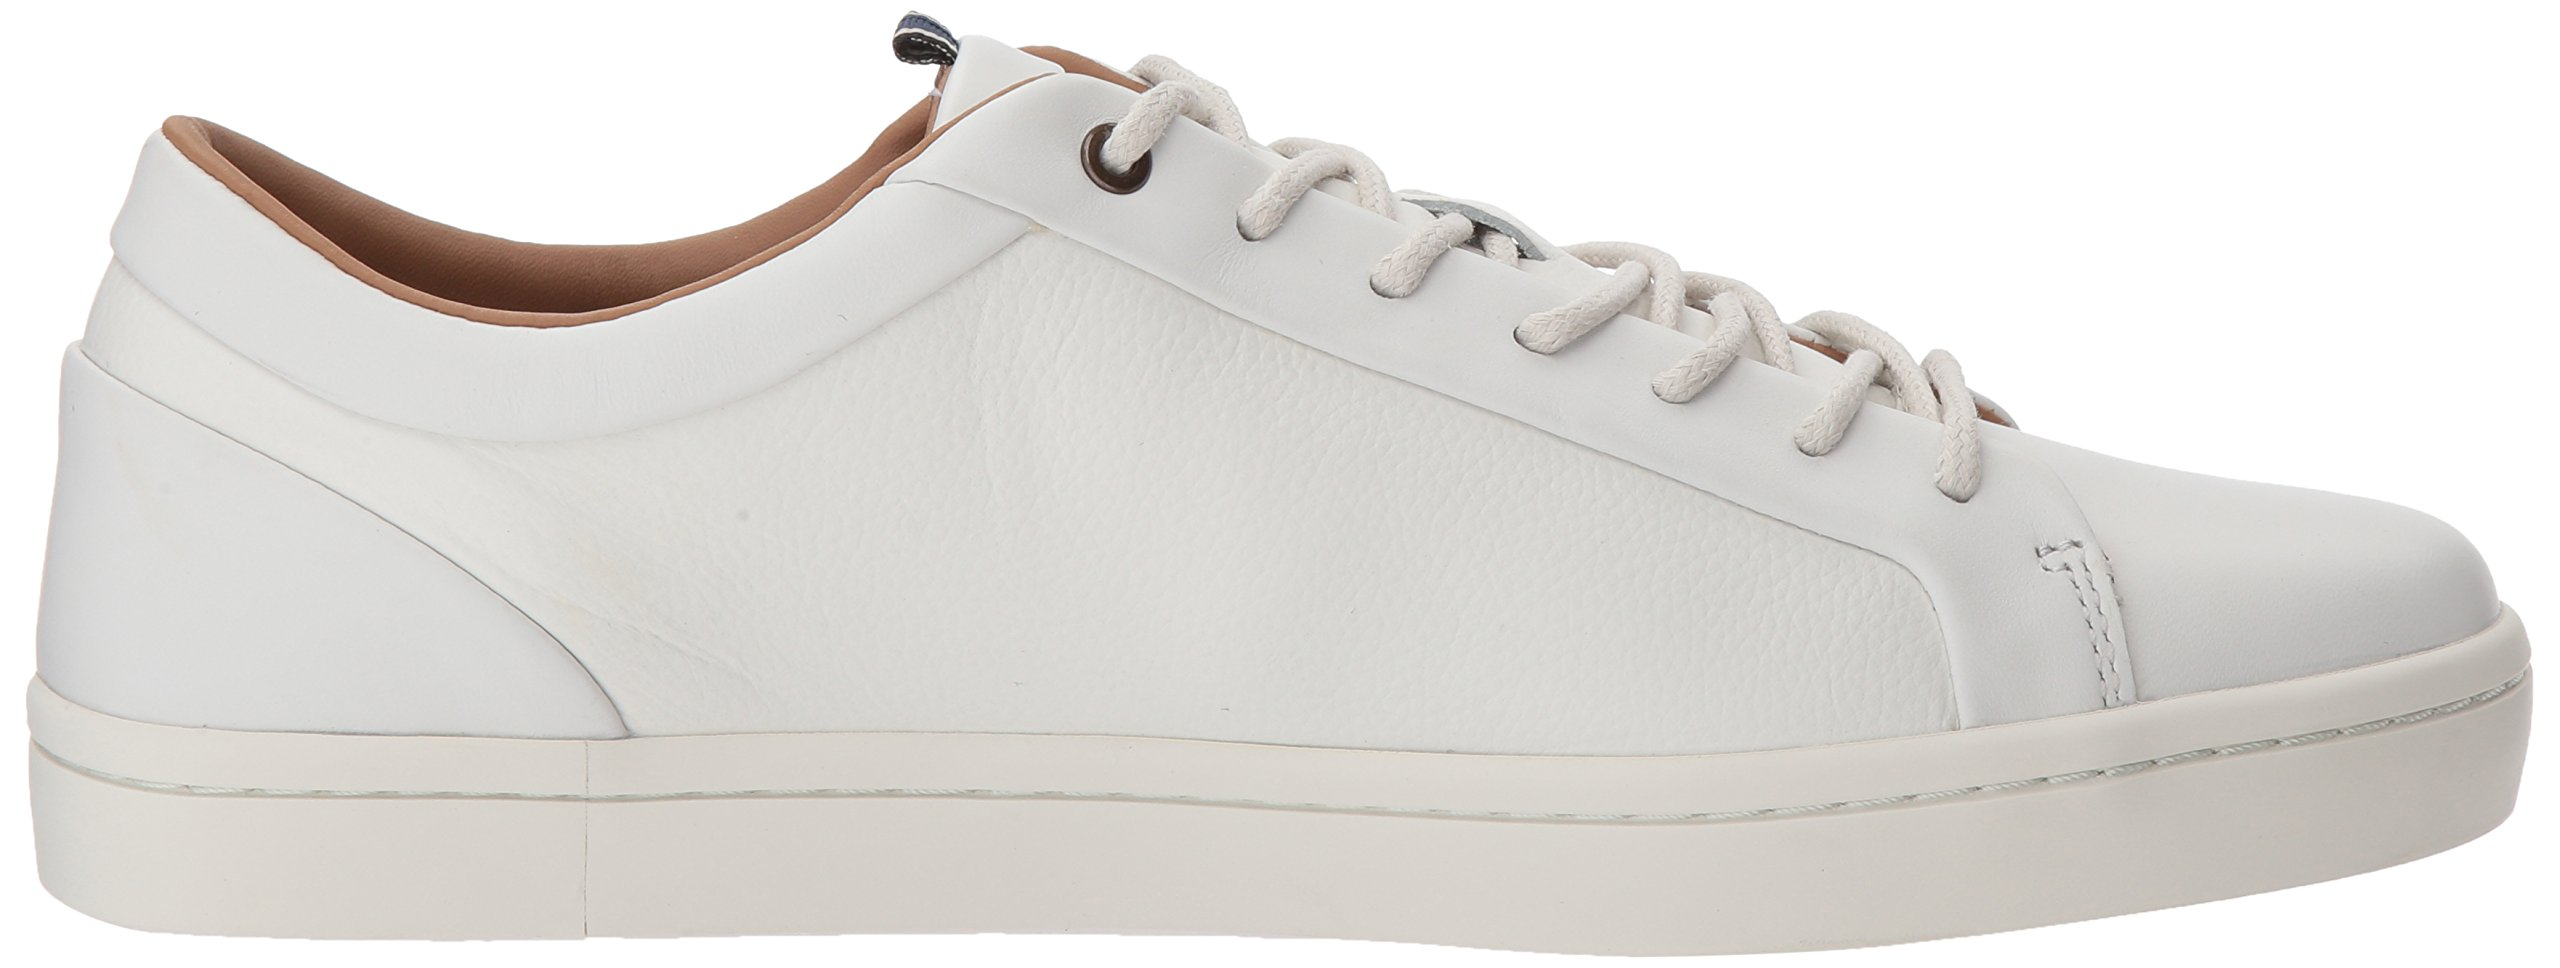 Lacoste Men's Straightset Sneakers by Lacoste (Image #7)